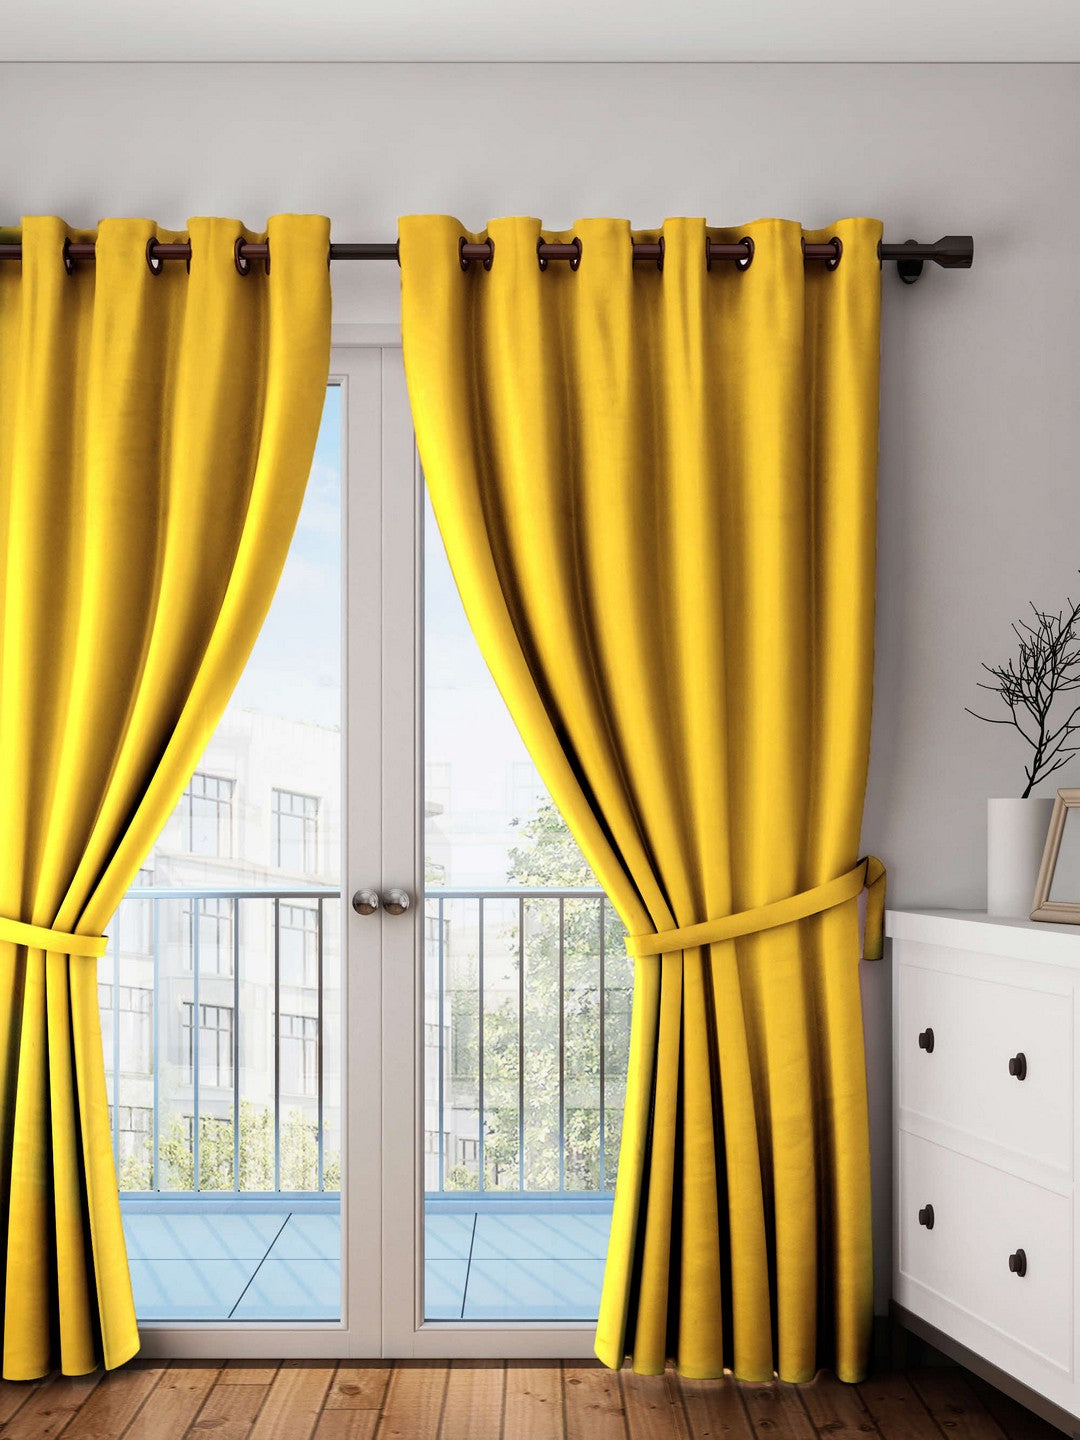 Lushomes Lemon Chrome Plain Cotton Curtains With 8 Eyelets for Long Door